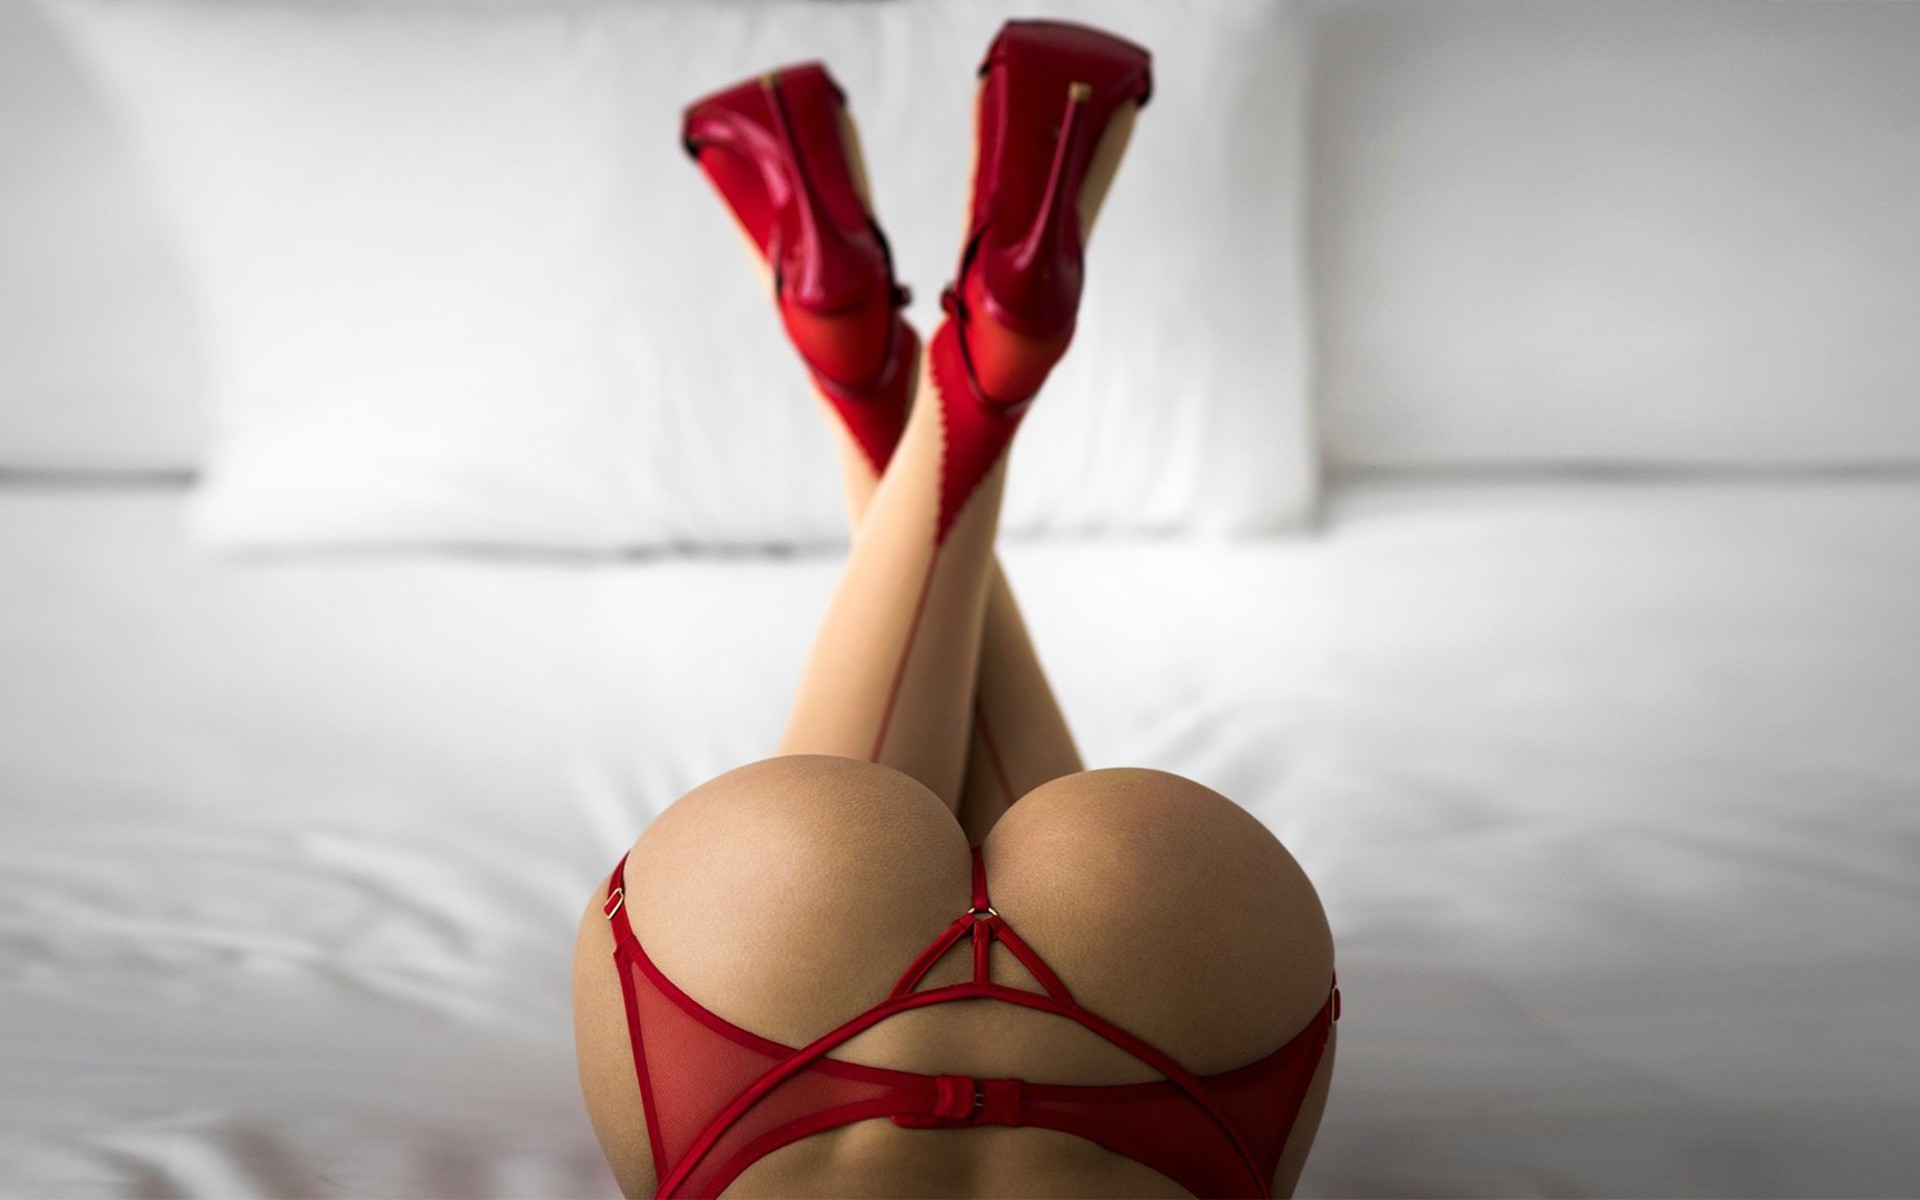 women-ass-thong-high-heels-red-lingerie